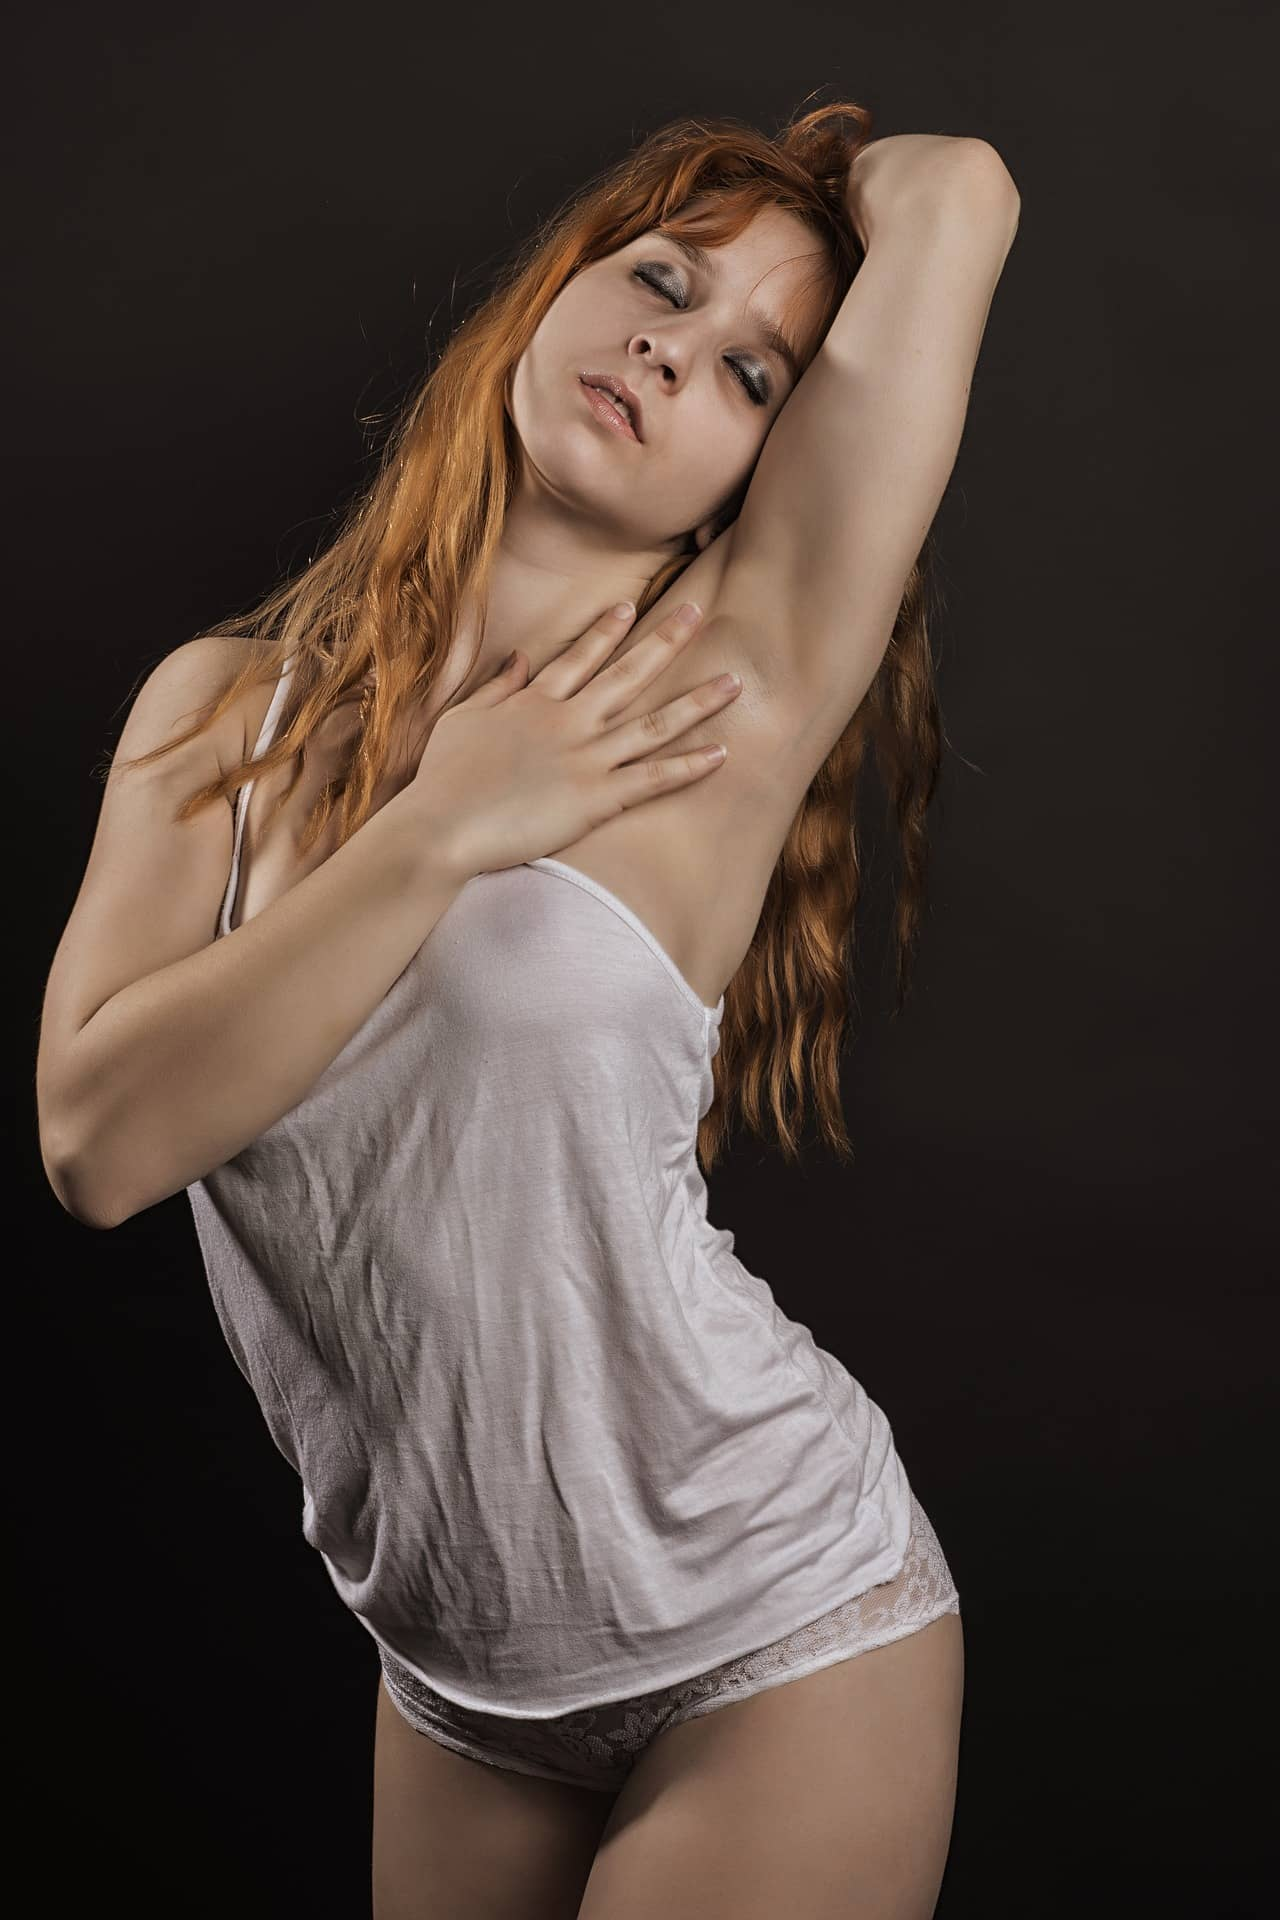 Beautiful redhead woman posing in an artistic photoshoot with her arm up wearing white transparent clothes and lace panties showing breast areola